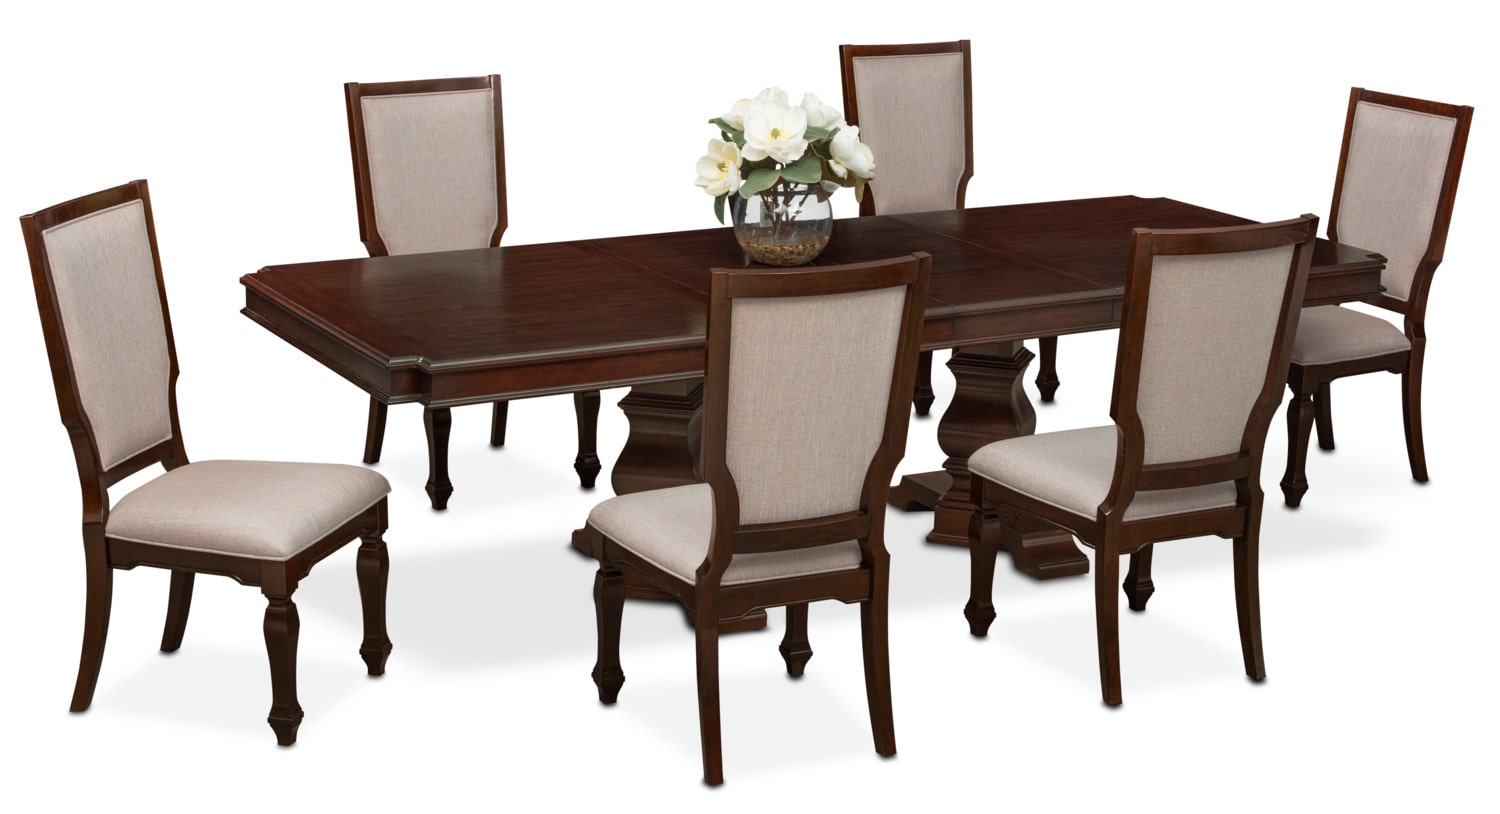 Dining Room Furniture - Vienna Dining Table and 6 Upholstered Dining Chairs